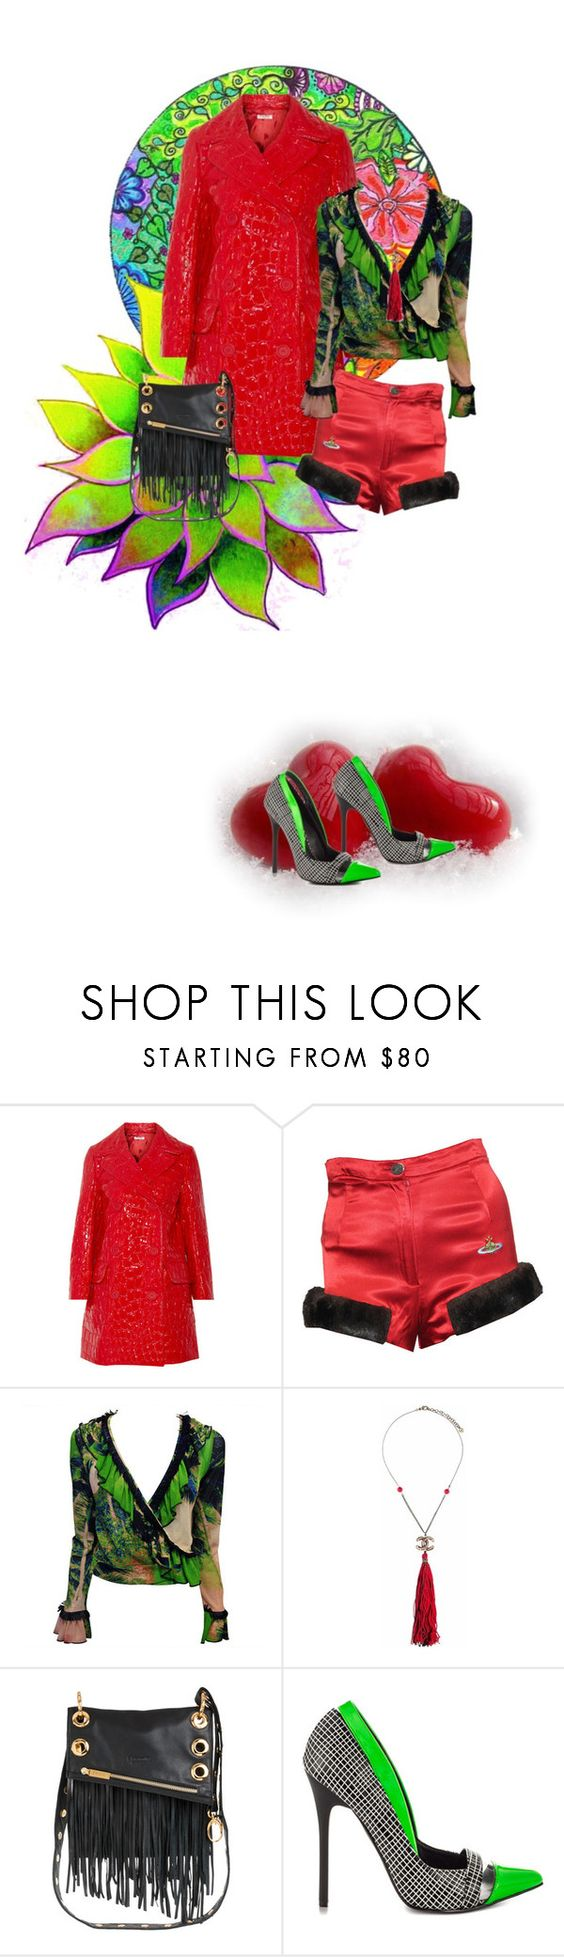 """""""10-01-16   10:37"""" by oligs022 ❤ liked on Polyvore featuring Miu Miu, Vivienne Westwood, Jean-Paul Gaultier, Chanel and Privileged"""